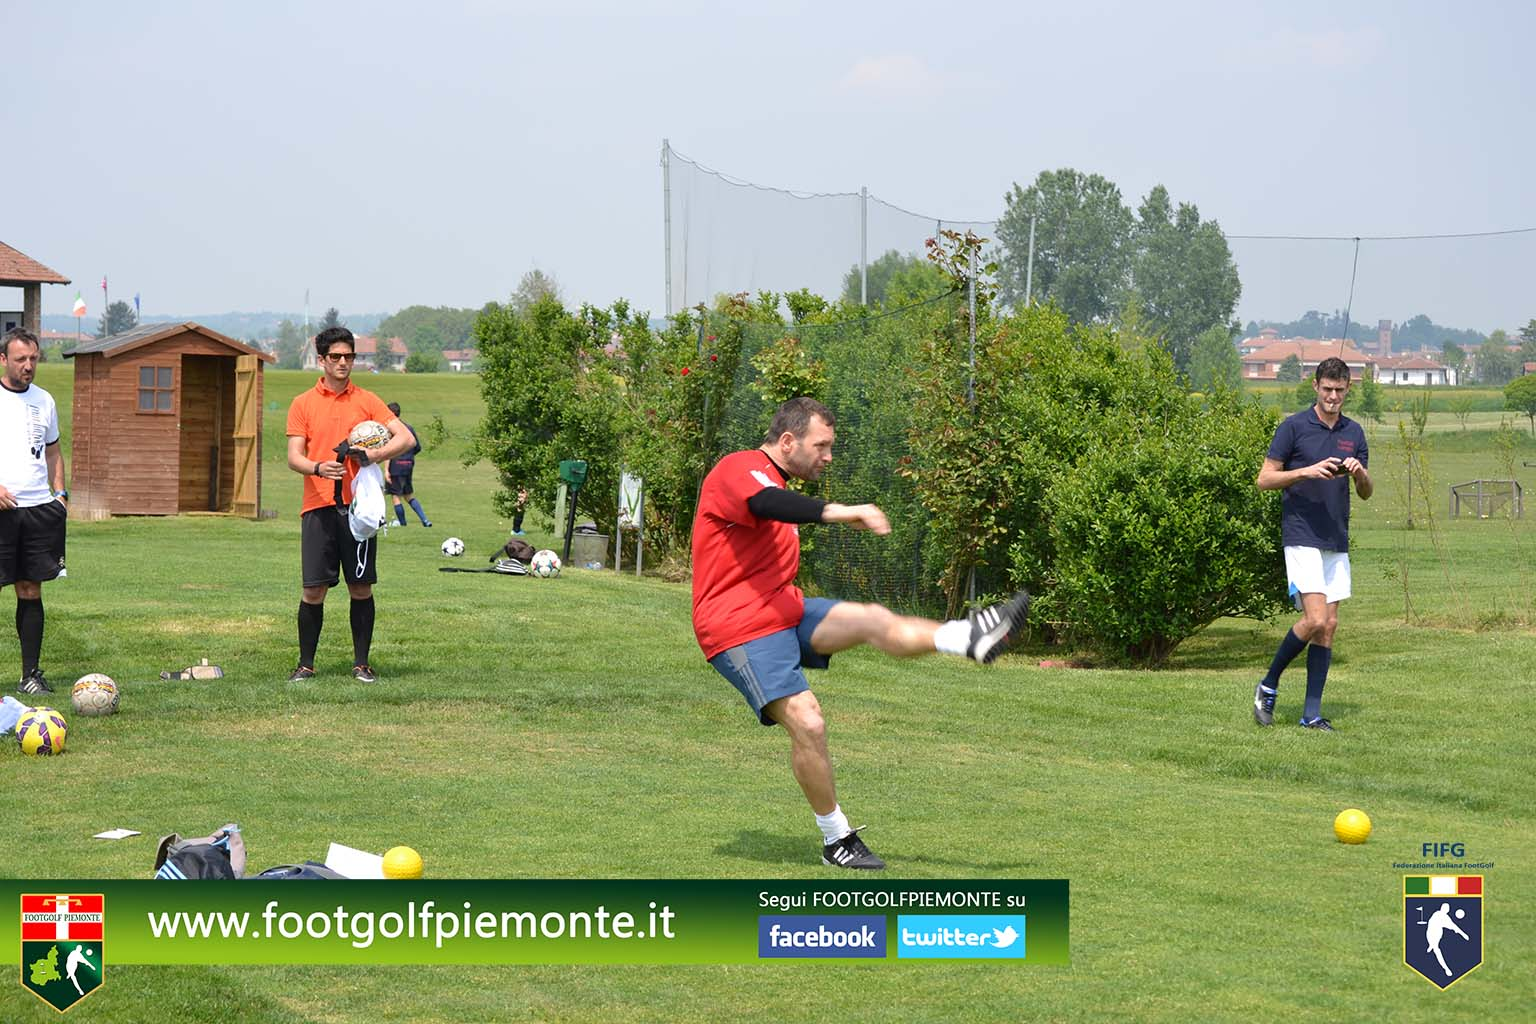 FOTO 9 Regions' Cup Footgolf Piemonte 2016 Golf Città di Asti (At) 30apr16-53